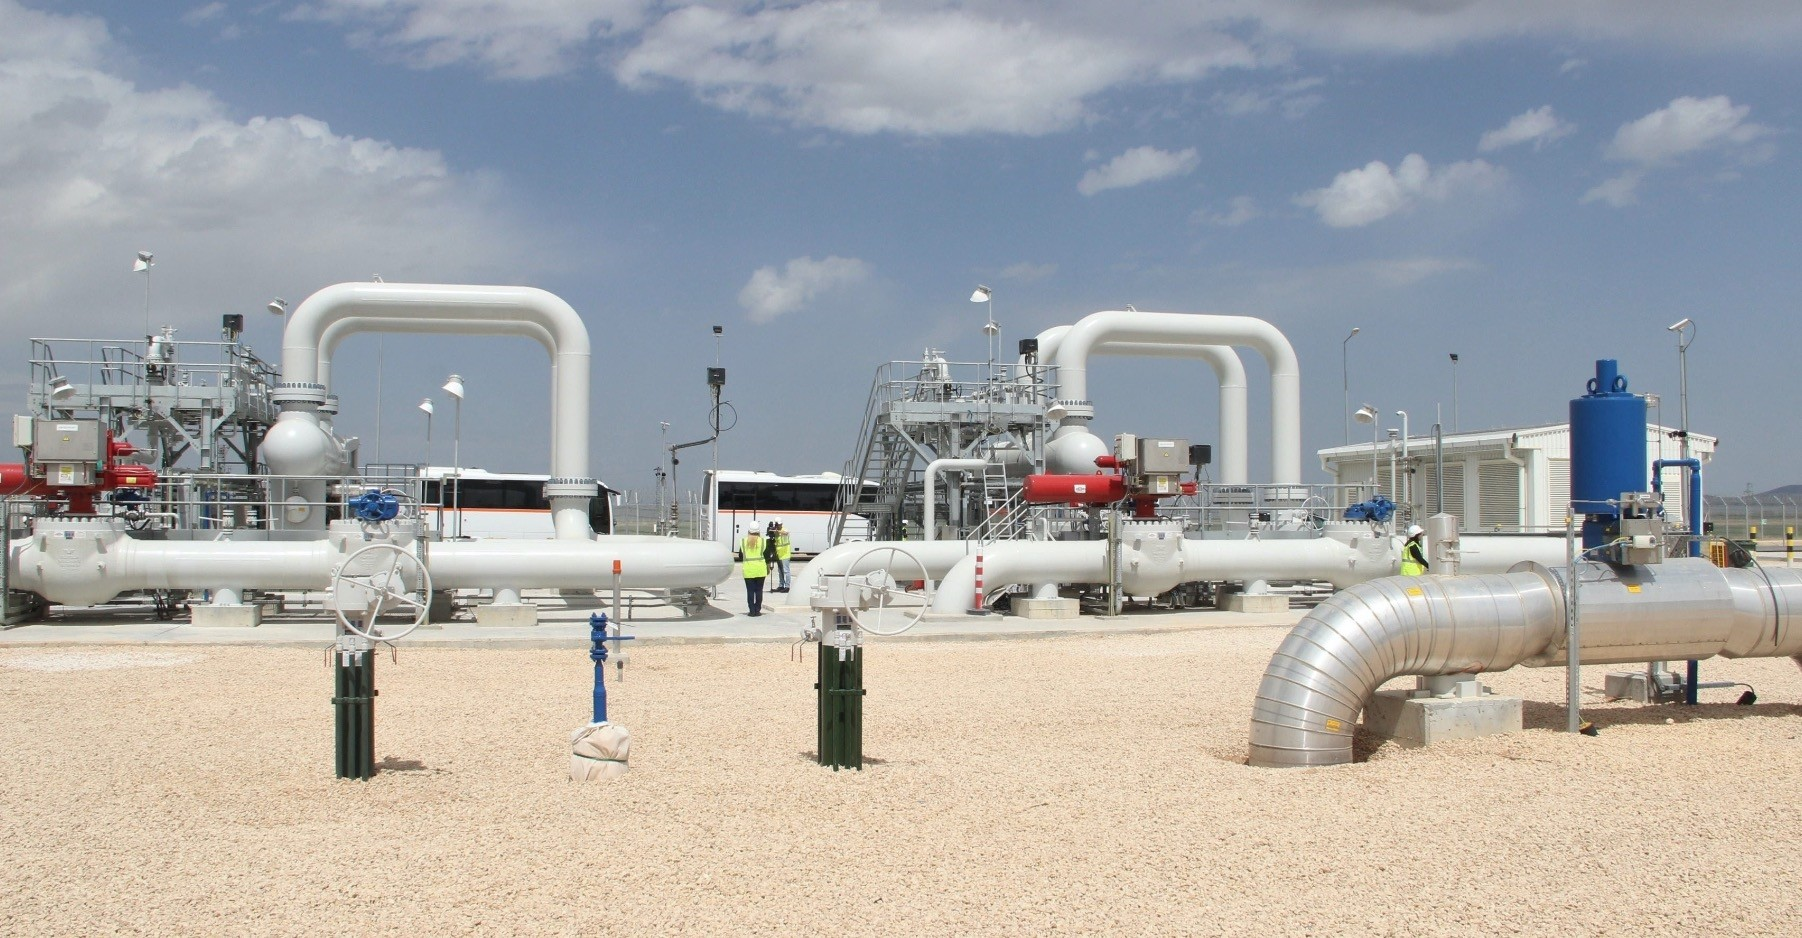 Gas pipes and valves in Turkeyu2019s central Anatolian city of Eskiu015fehir through which Trans-Anatolian Natural Gas Pipeline (TANAP) passes.